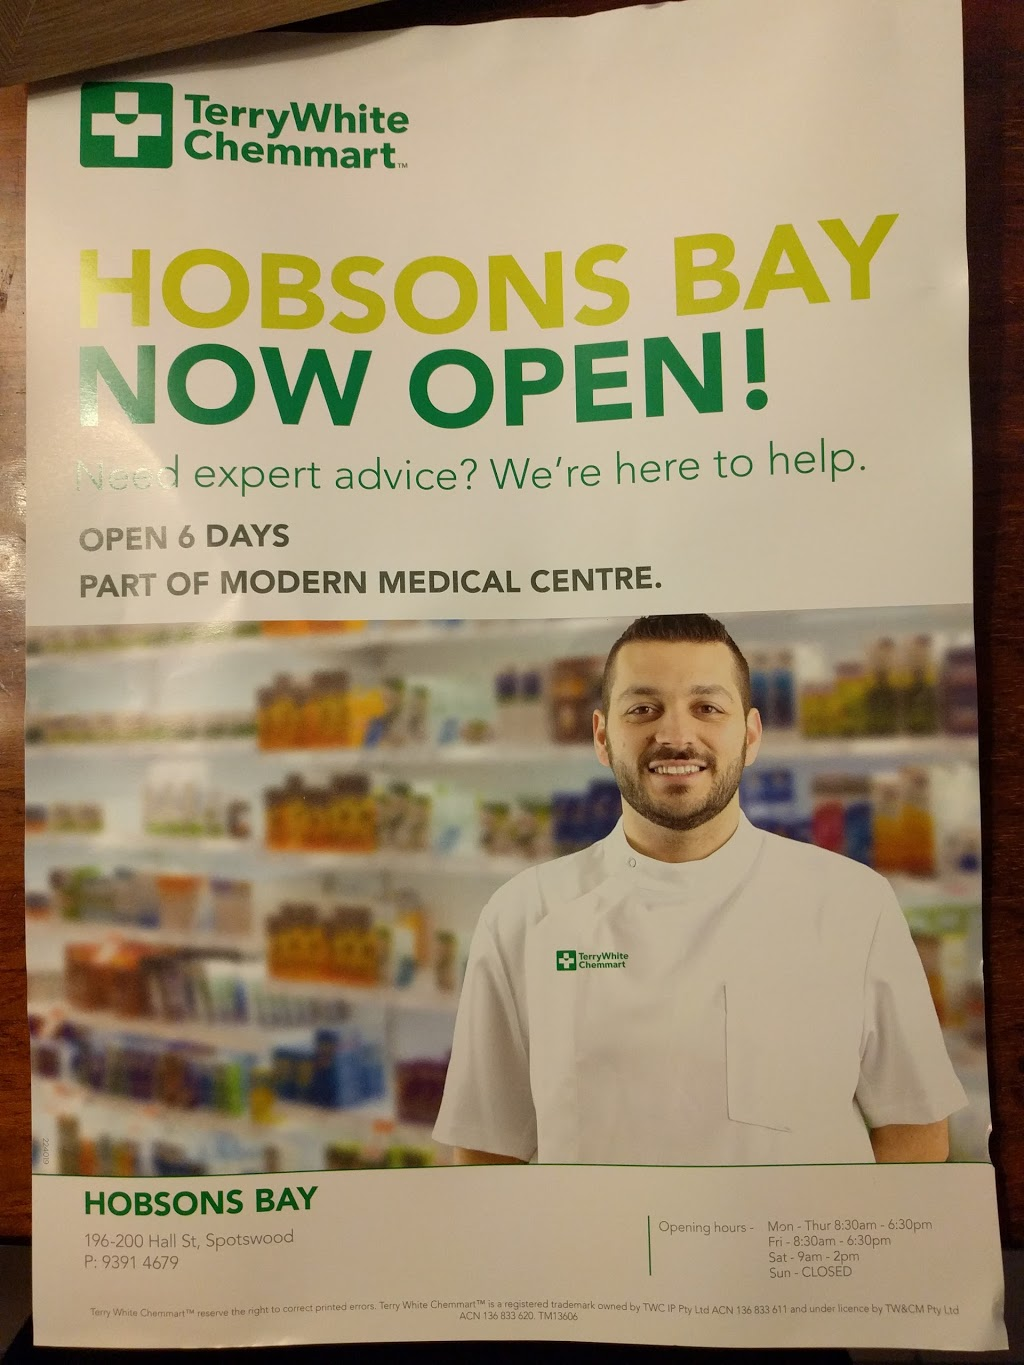 TerryWhite Chemmart Hobsons Bay | pharmacy | 196-200 Hall St, Spotswood VIC 3015, Australia | 0393914679 OR +61 3 9391 4679